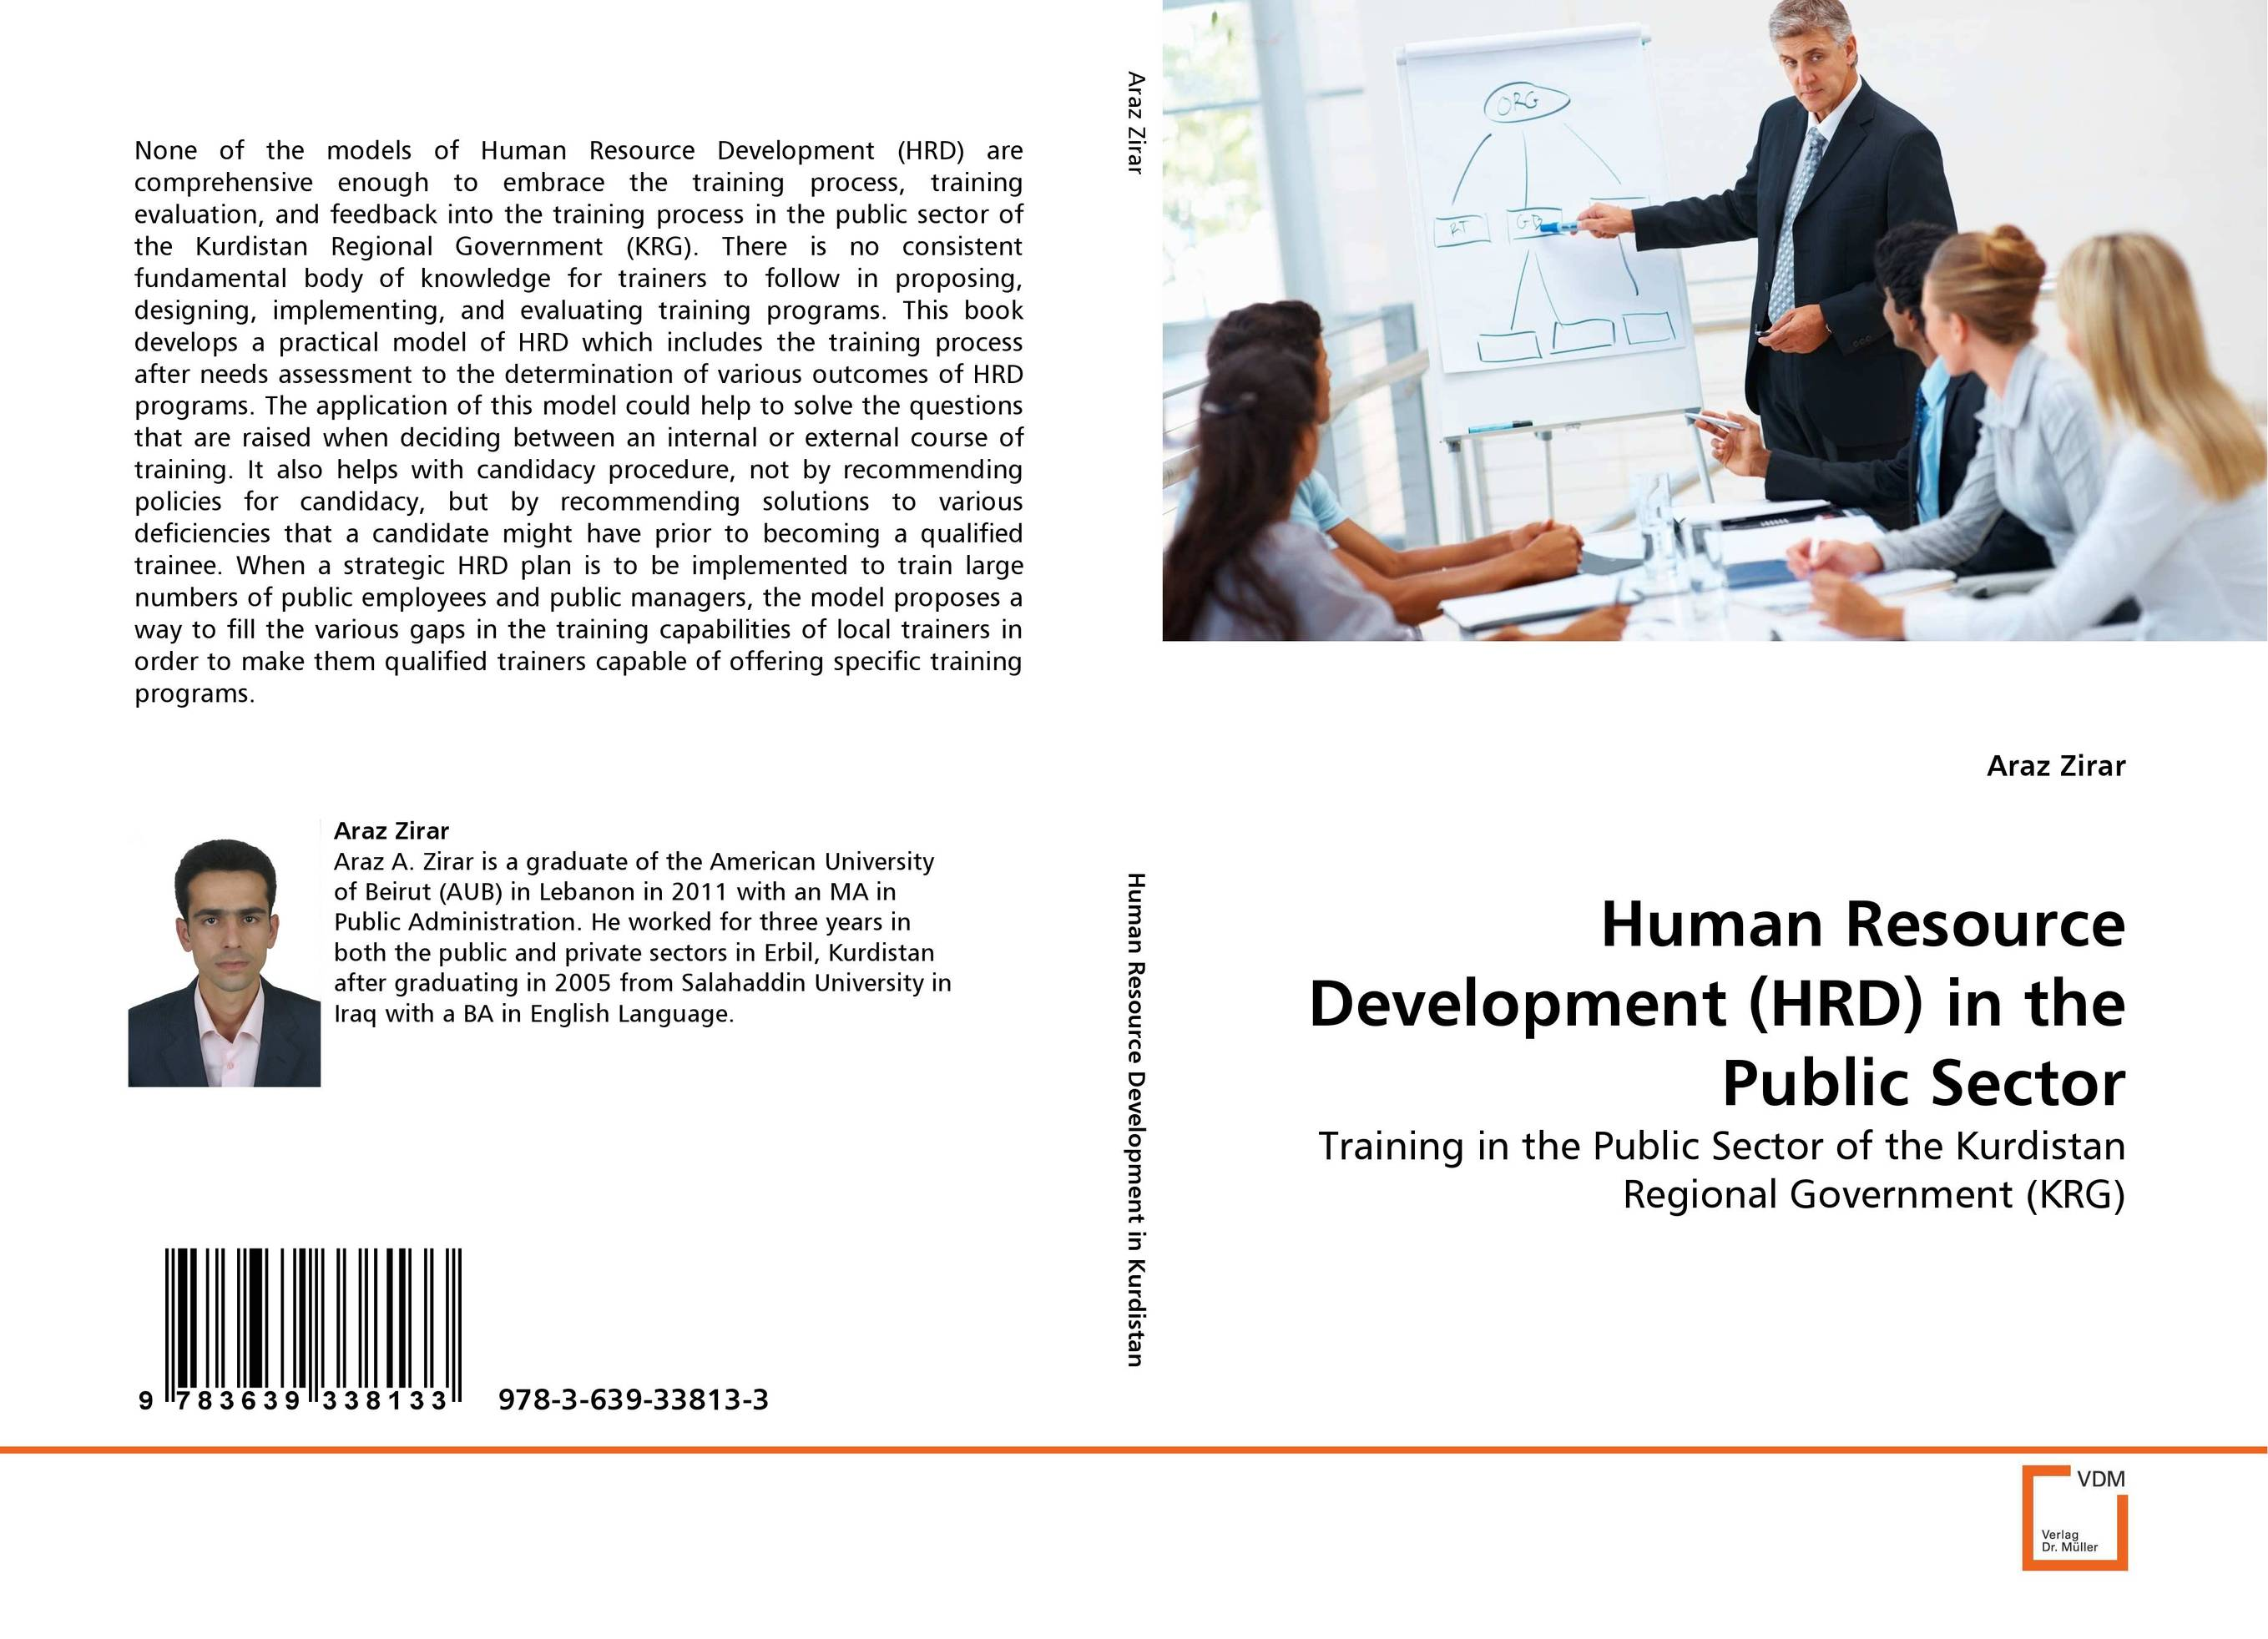 Human Resource Development (HRD) in the Public Sector